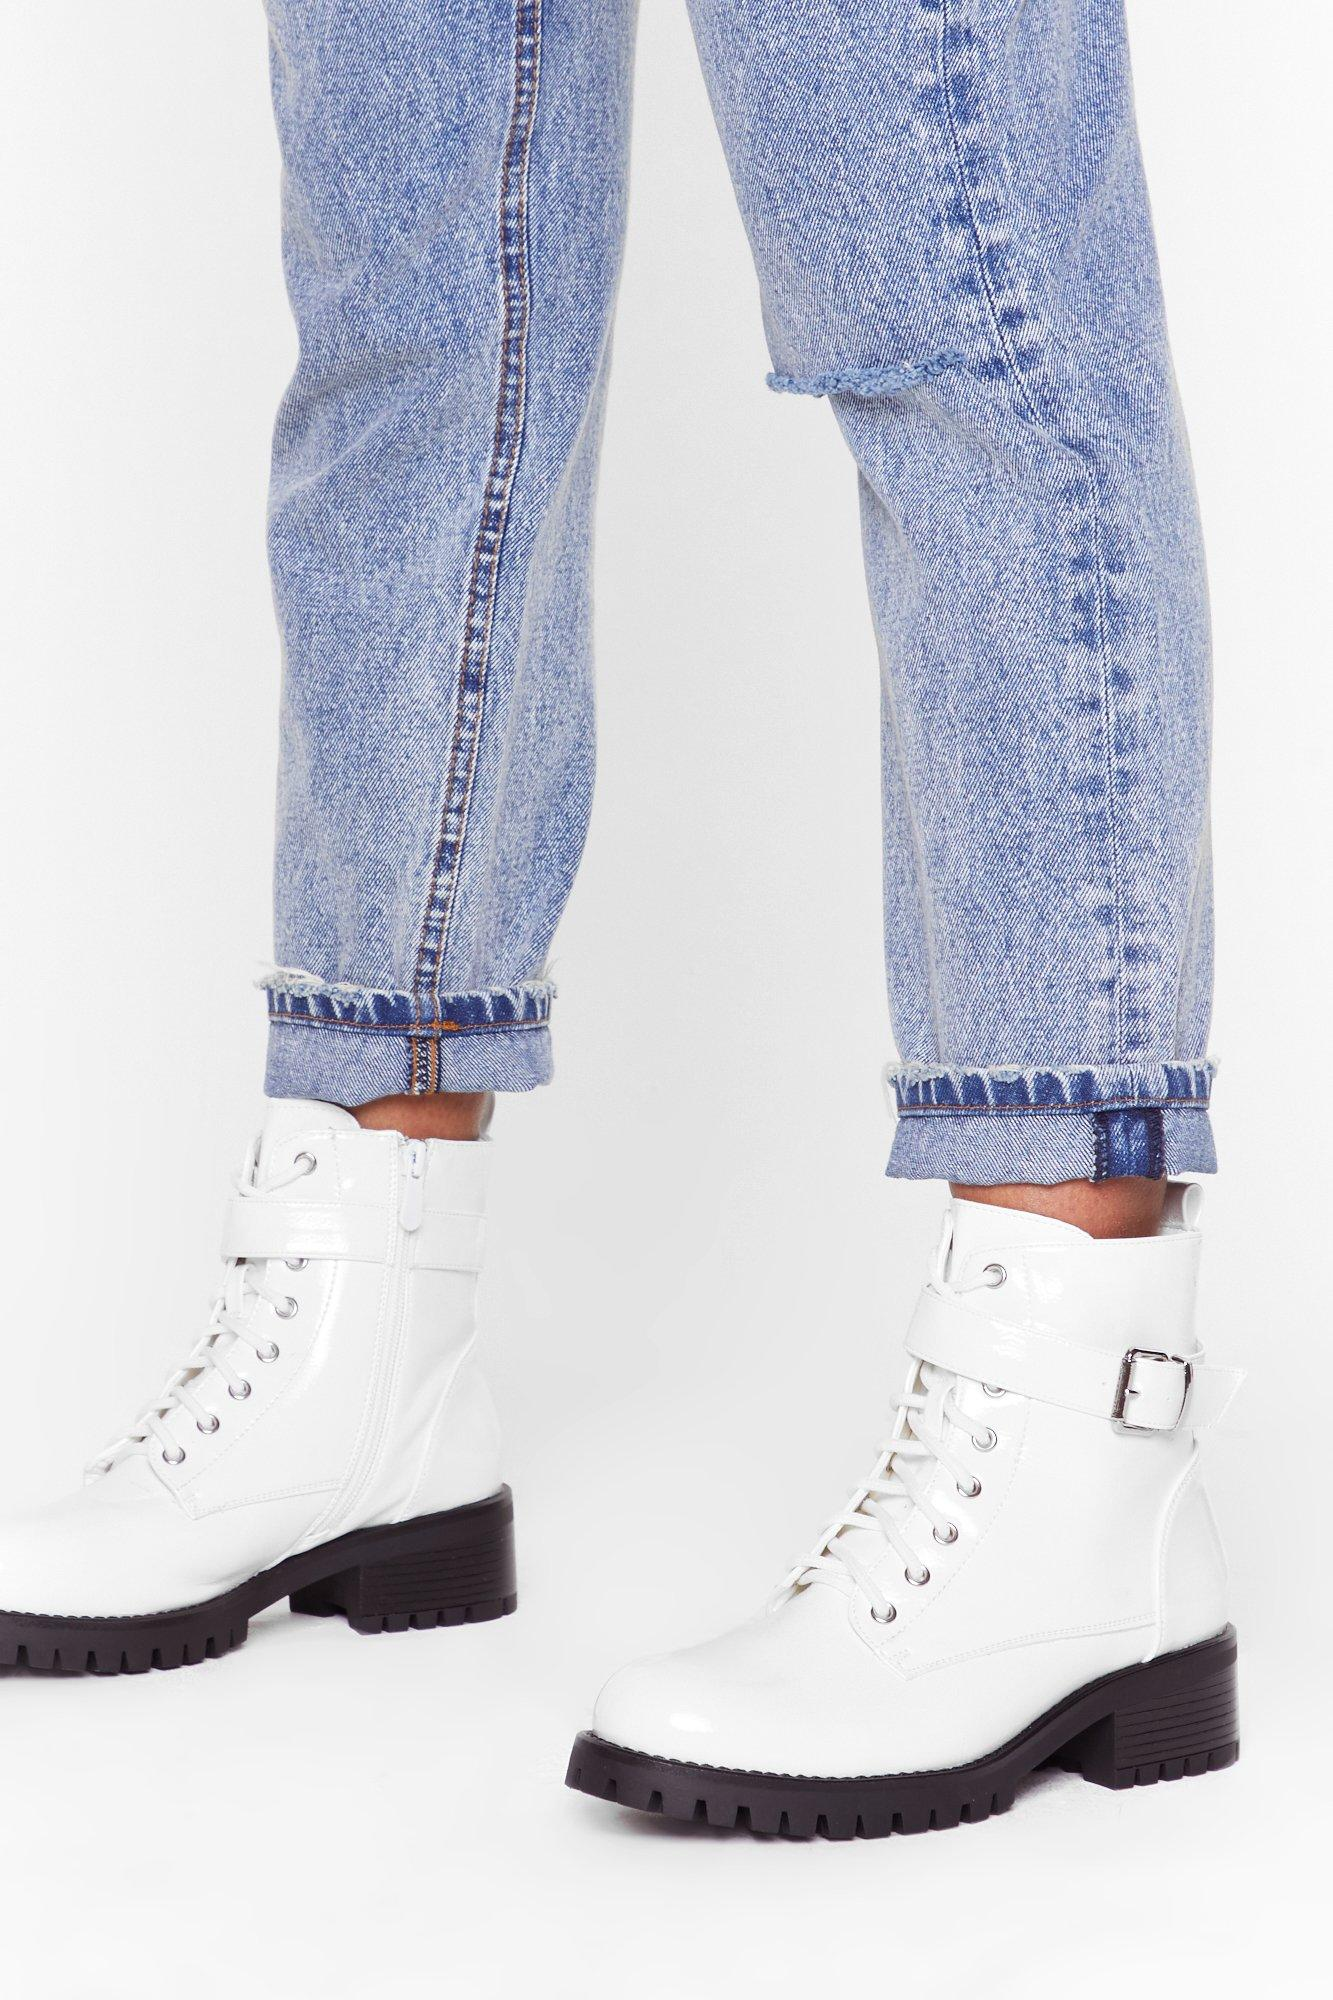 Image of Buck-le You Patent Faux Leather Boots